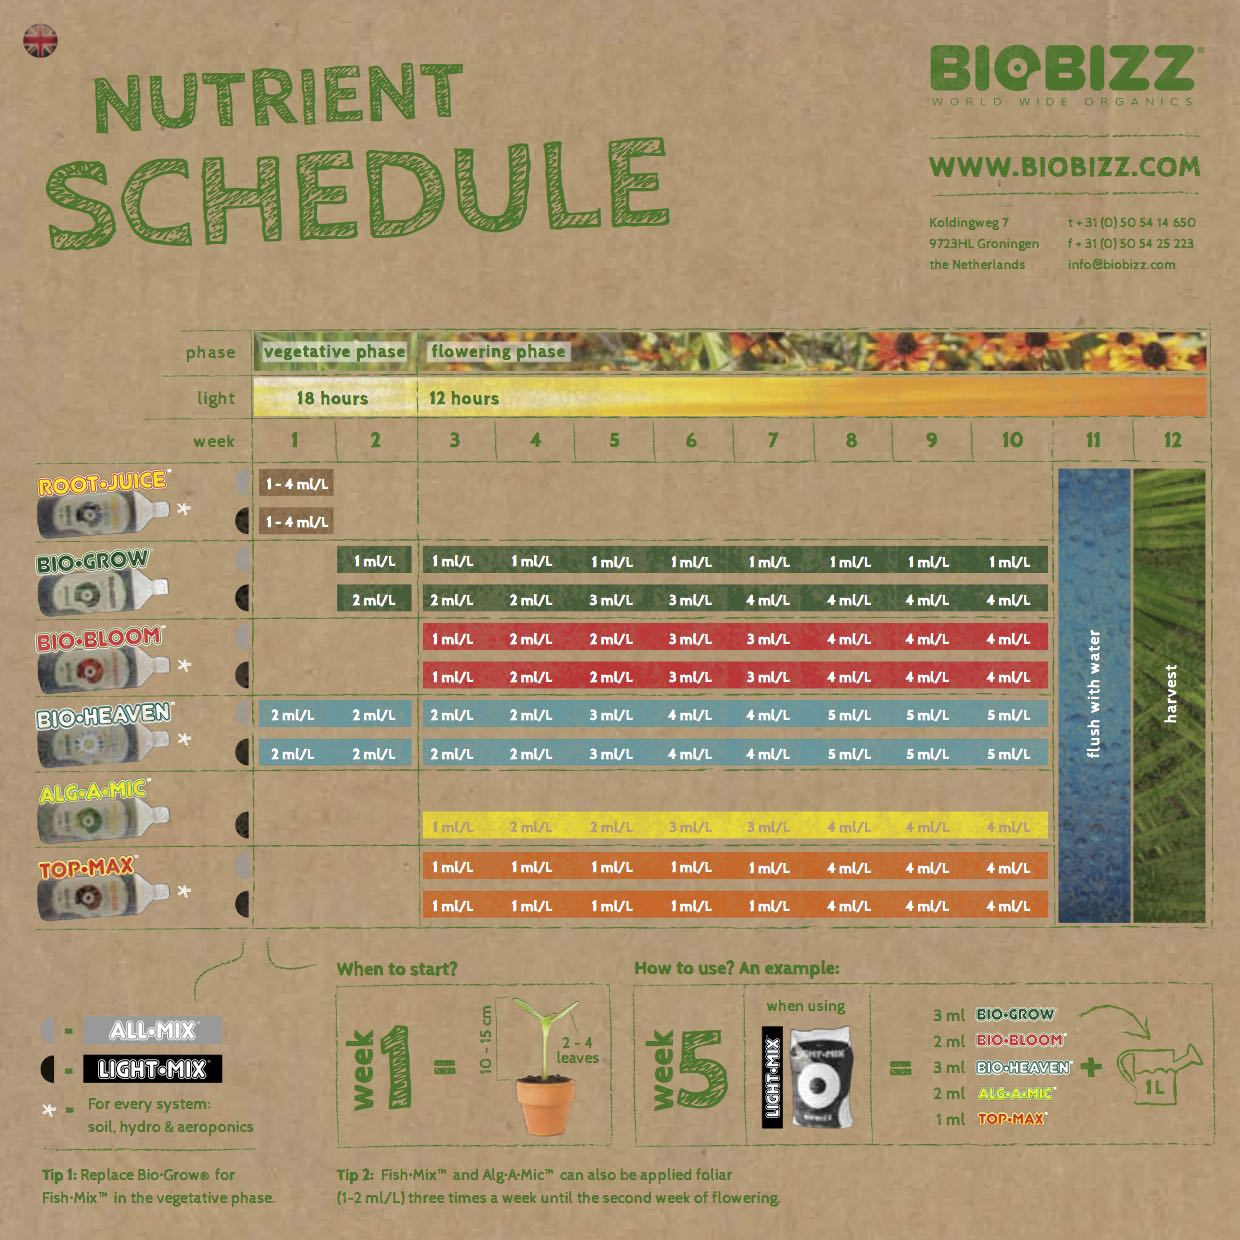 Biobizz Try·pack - nutrient schedule